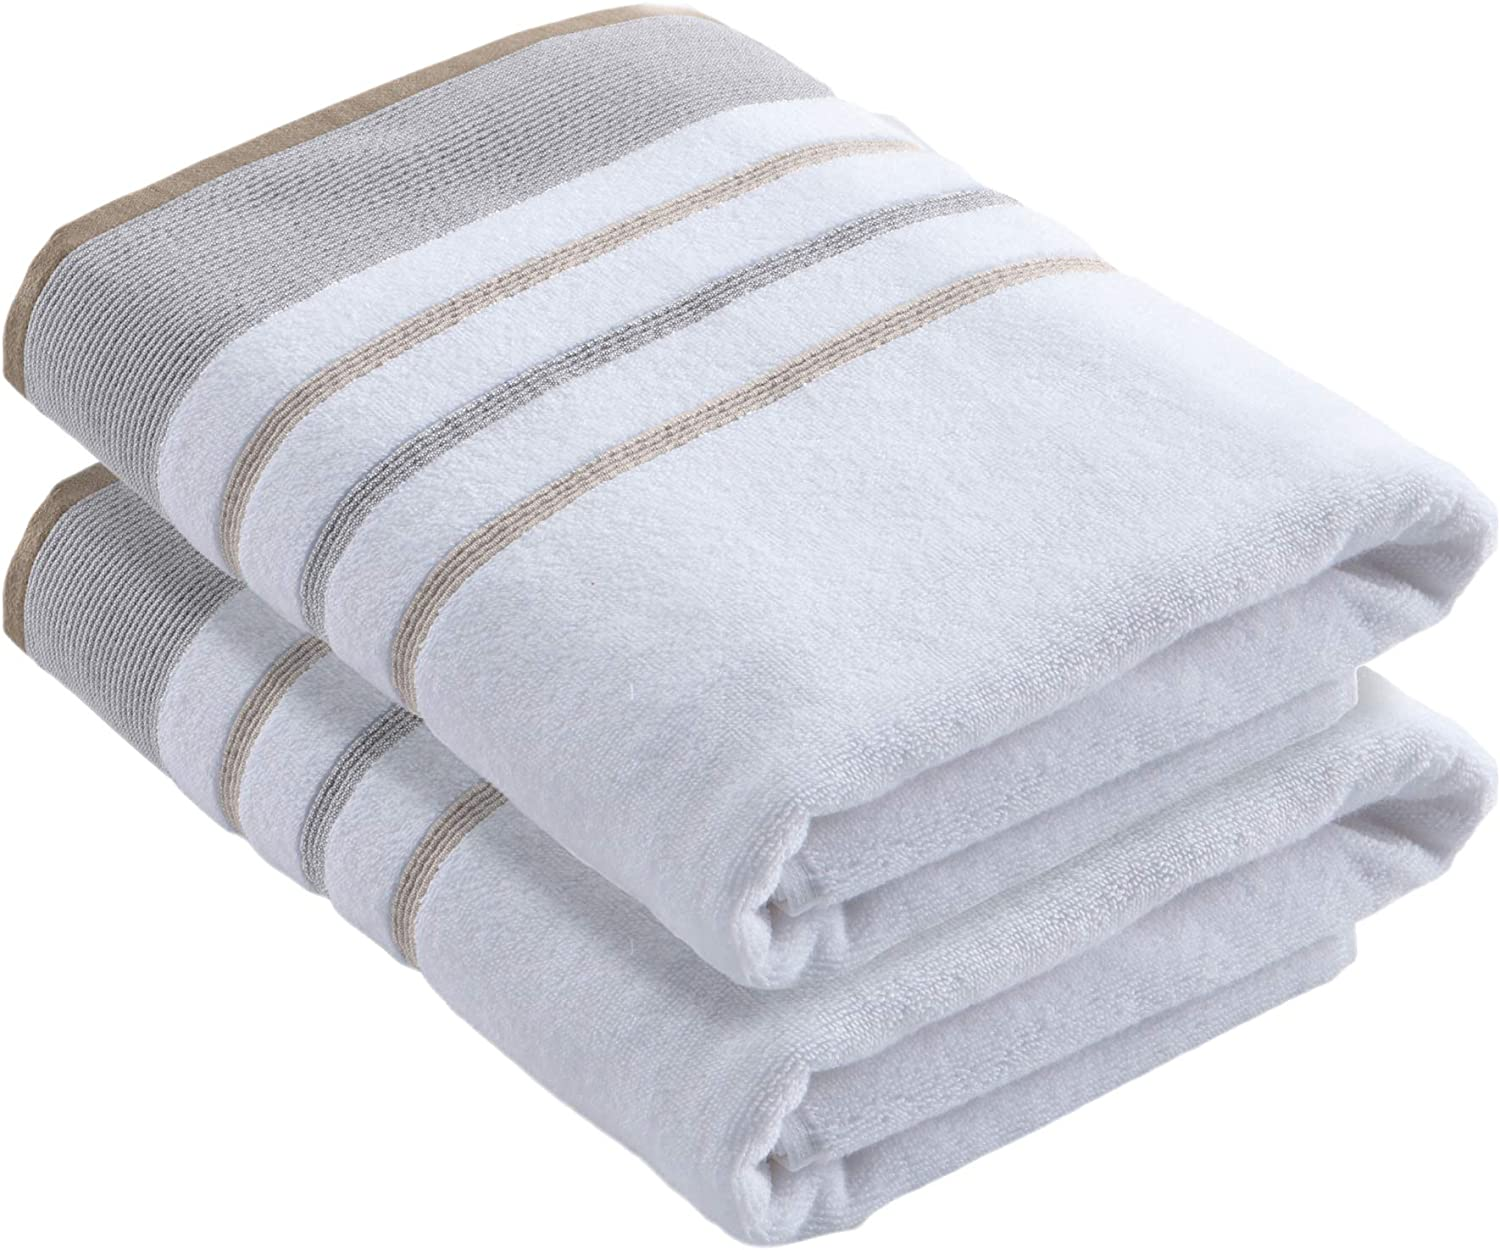 Turkish Cotton, Striped Bath Towel Set (30 x 54 inches) Oversized and Absorbent Luxury Quick-Dry Towels. Noelle Collection (Set of 2, Glacier Grey / Cappuccino)